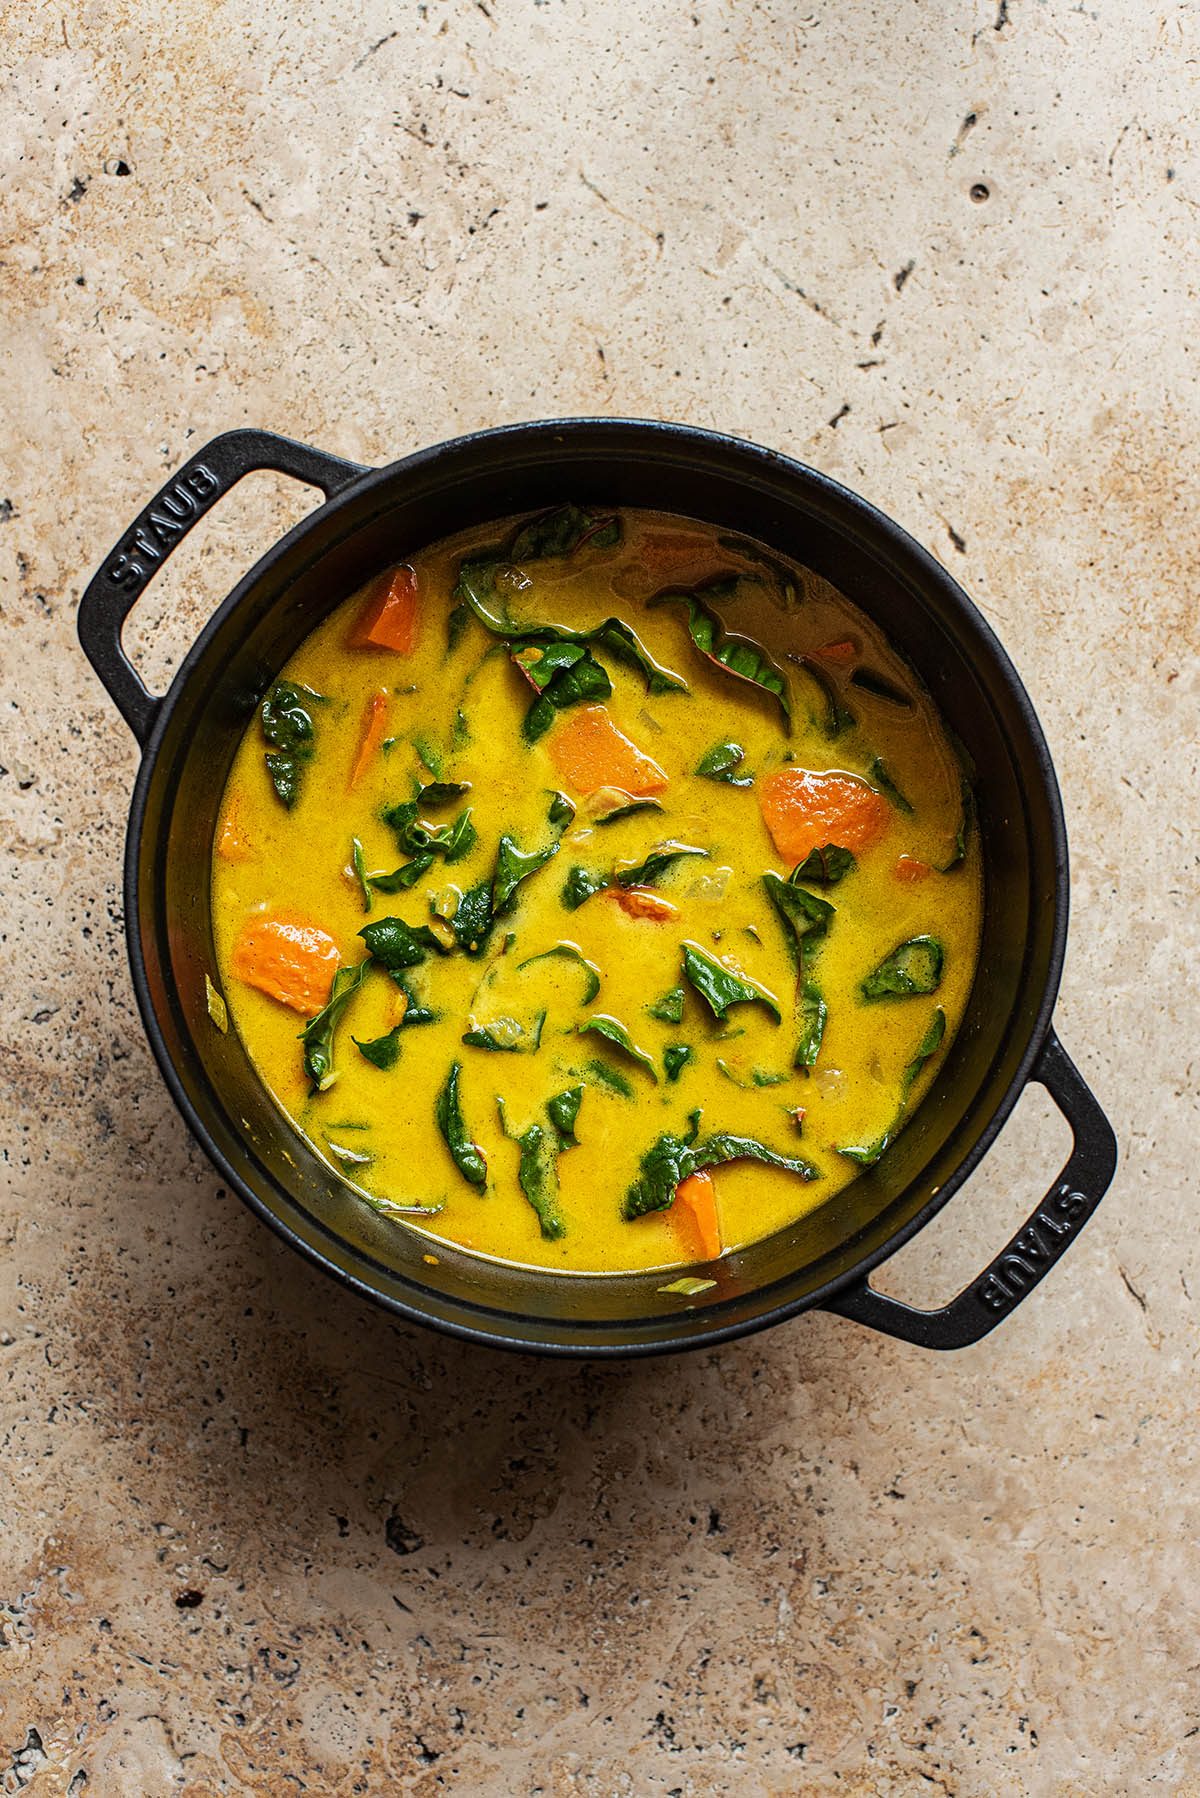 Pumpkin curry with greens in a large pot.